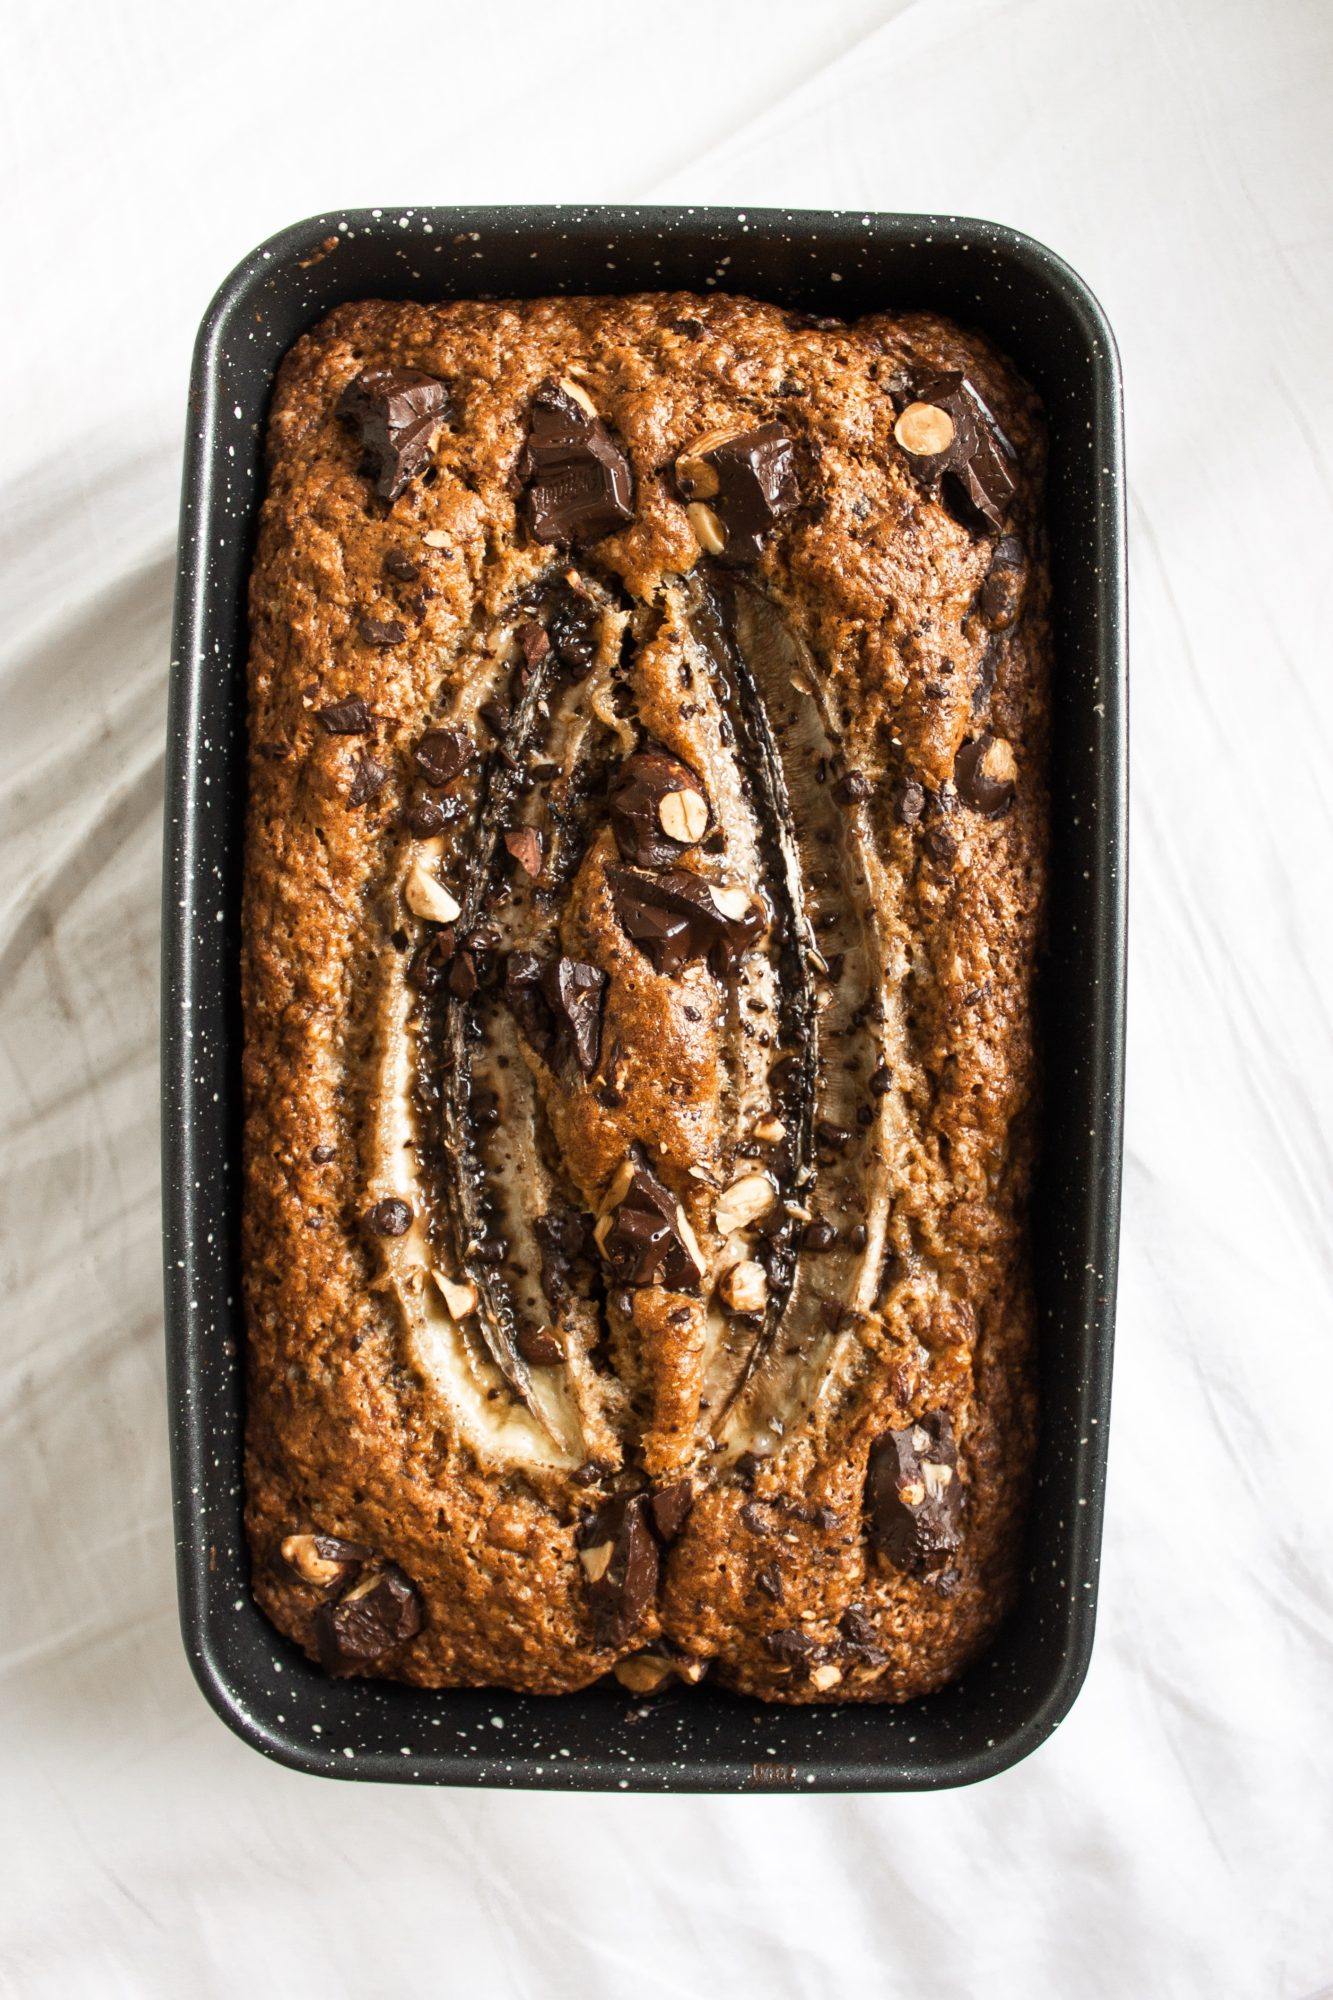 Recipe: Classic Vegan Chocolate Chip Banana Bread